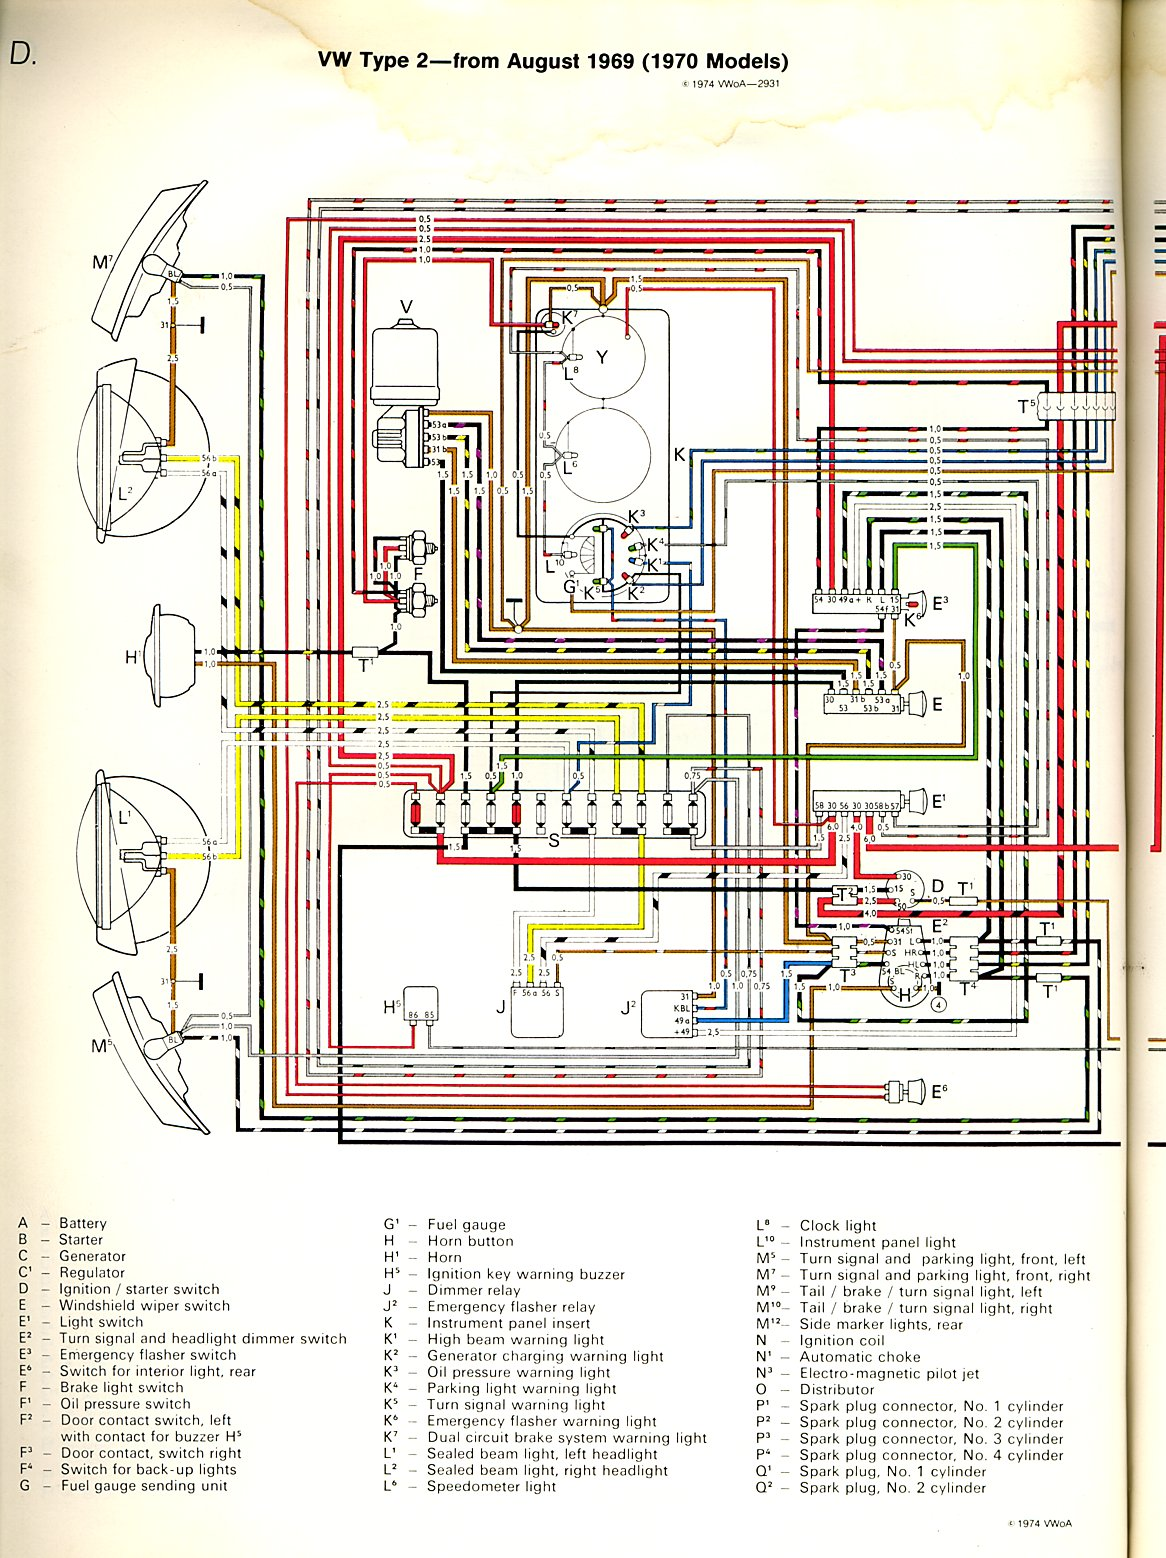 baybus_70a thesamba com type 2 wiring diagrams GM Turn Signal Switch Diagram at bakdesigns.co